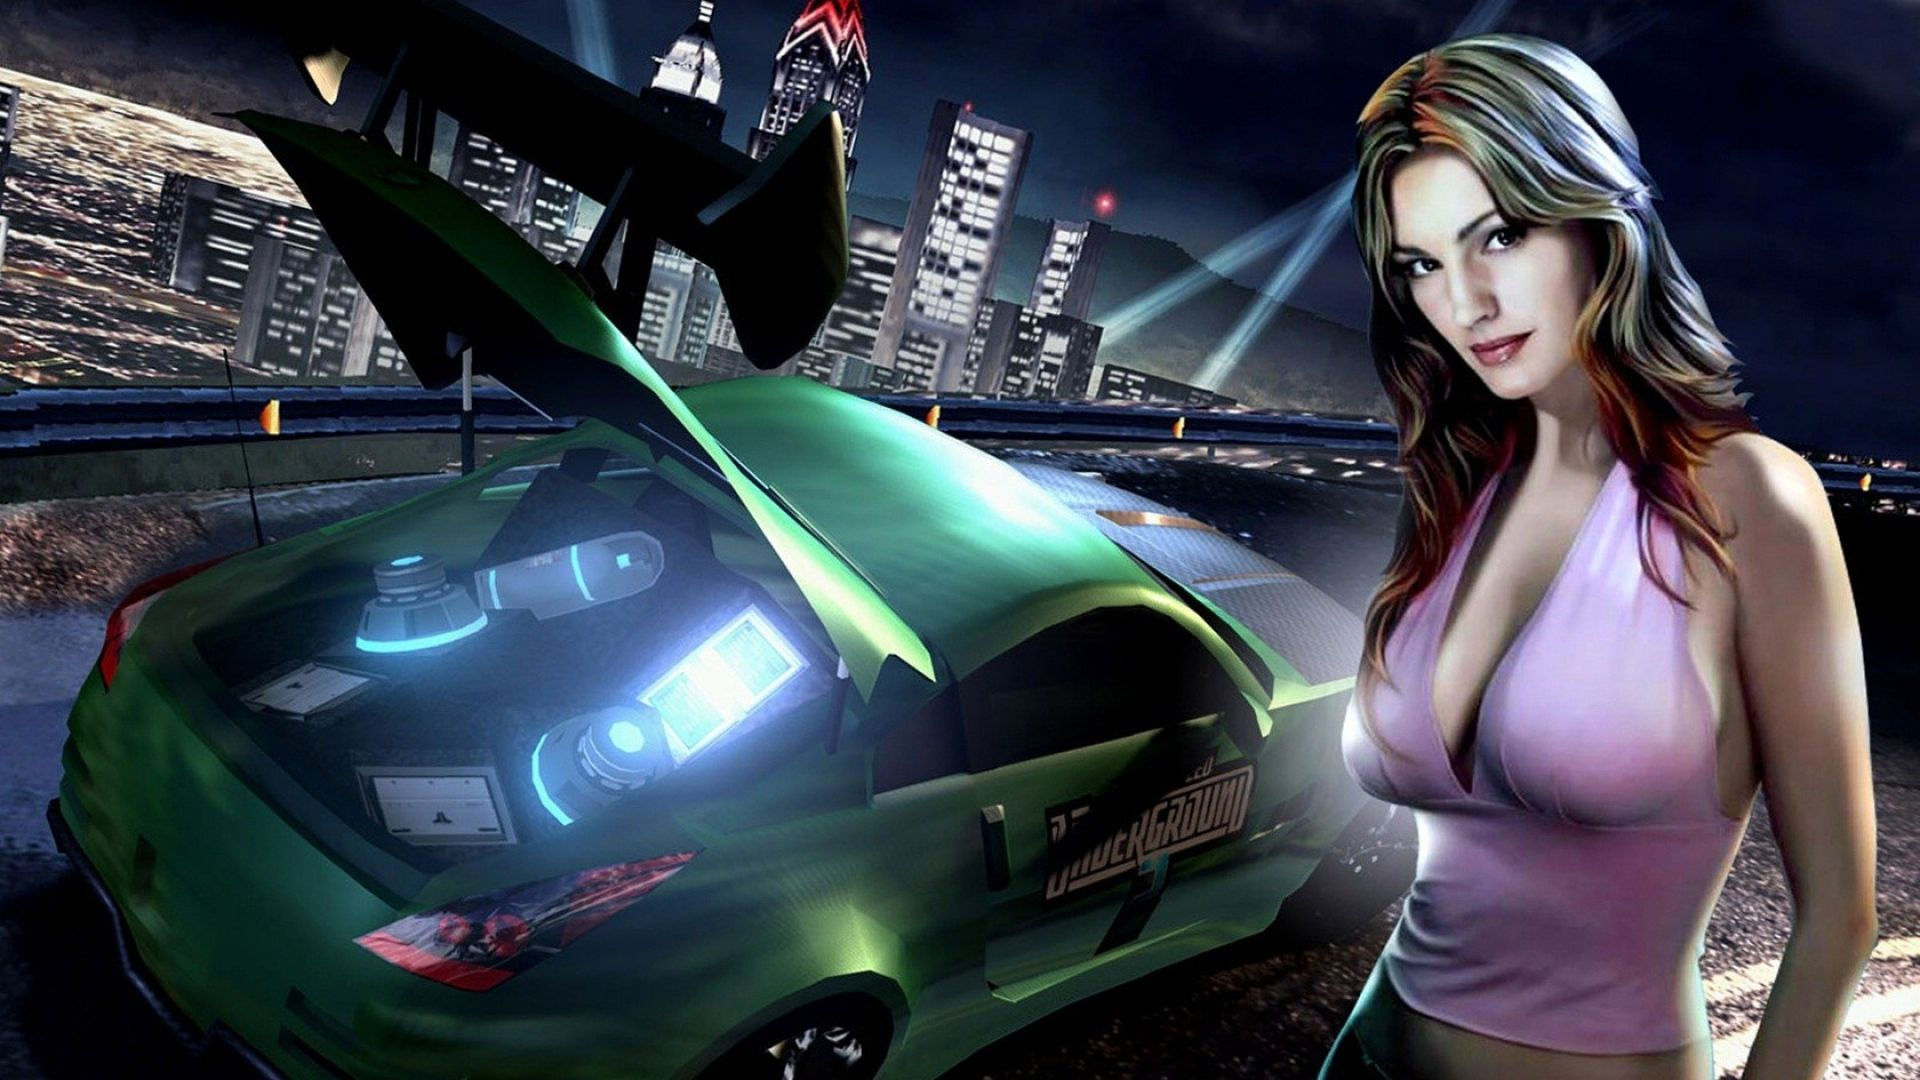 Download Wallpaper 1920x1080 Nfs Need For Speed Girl Sunset